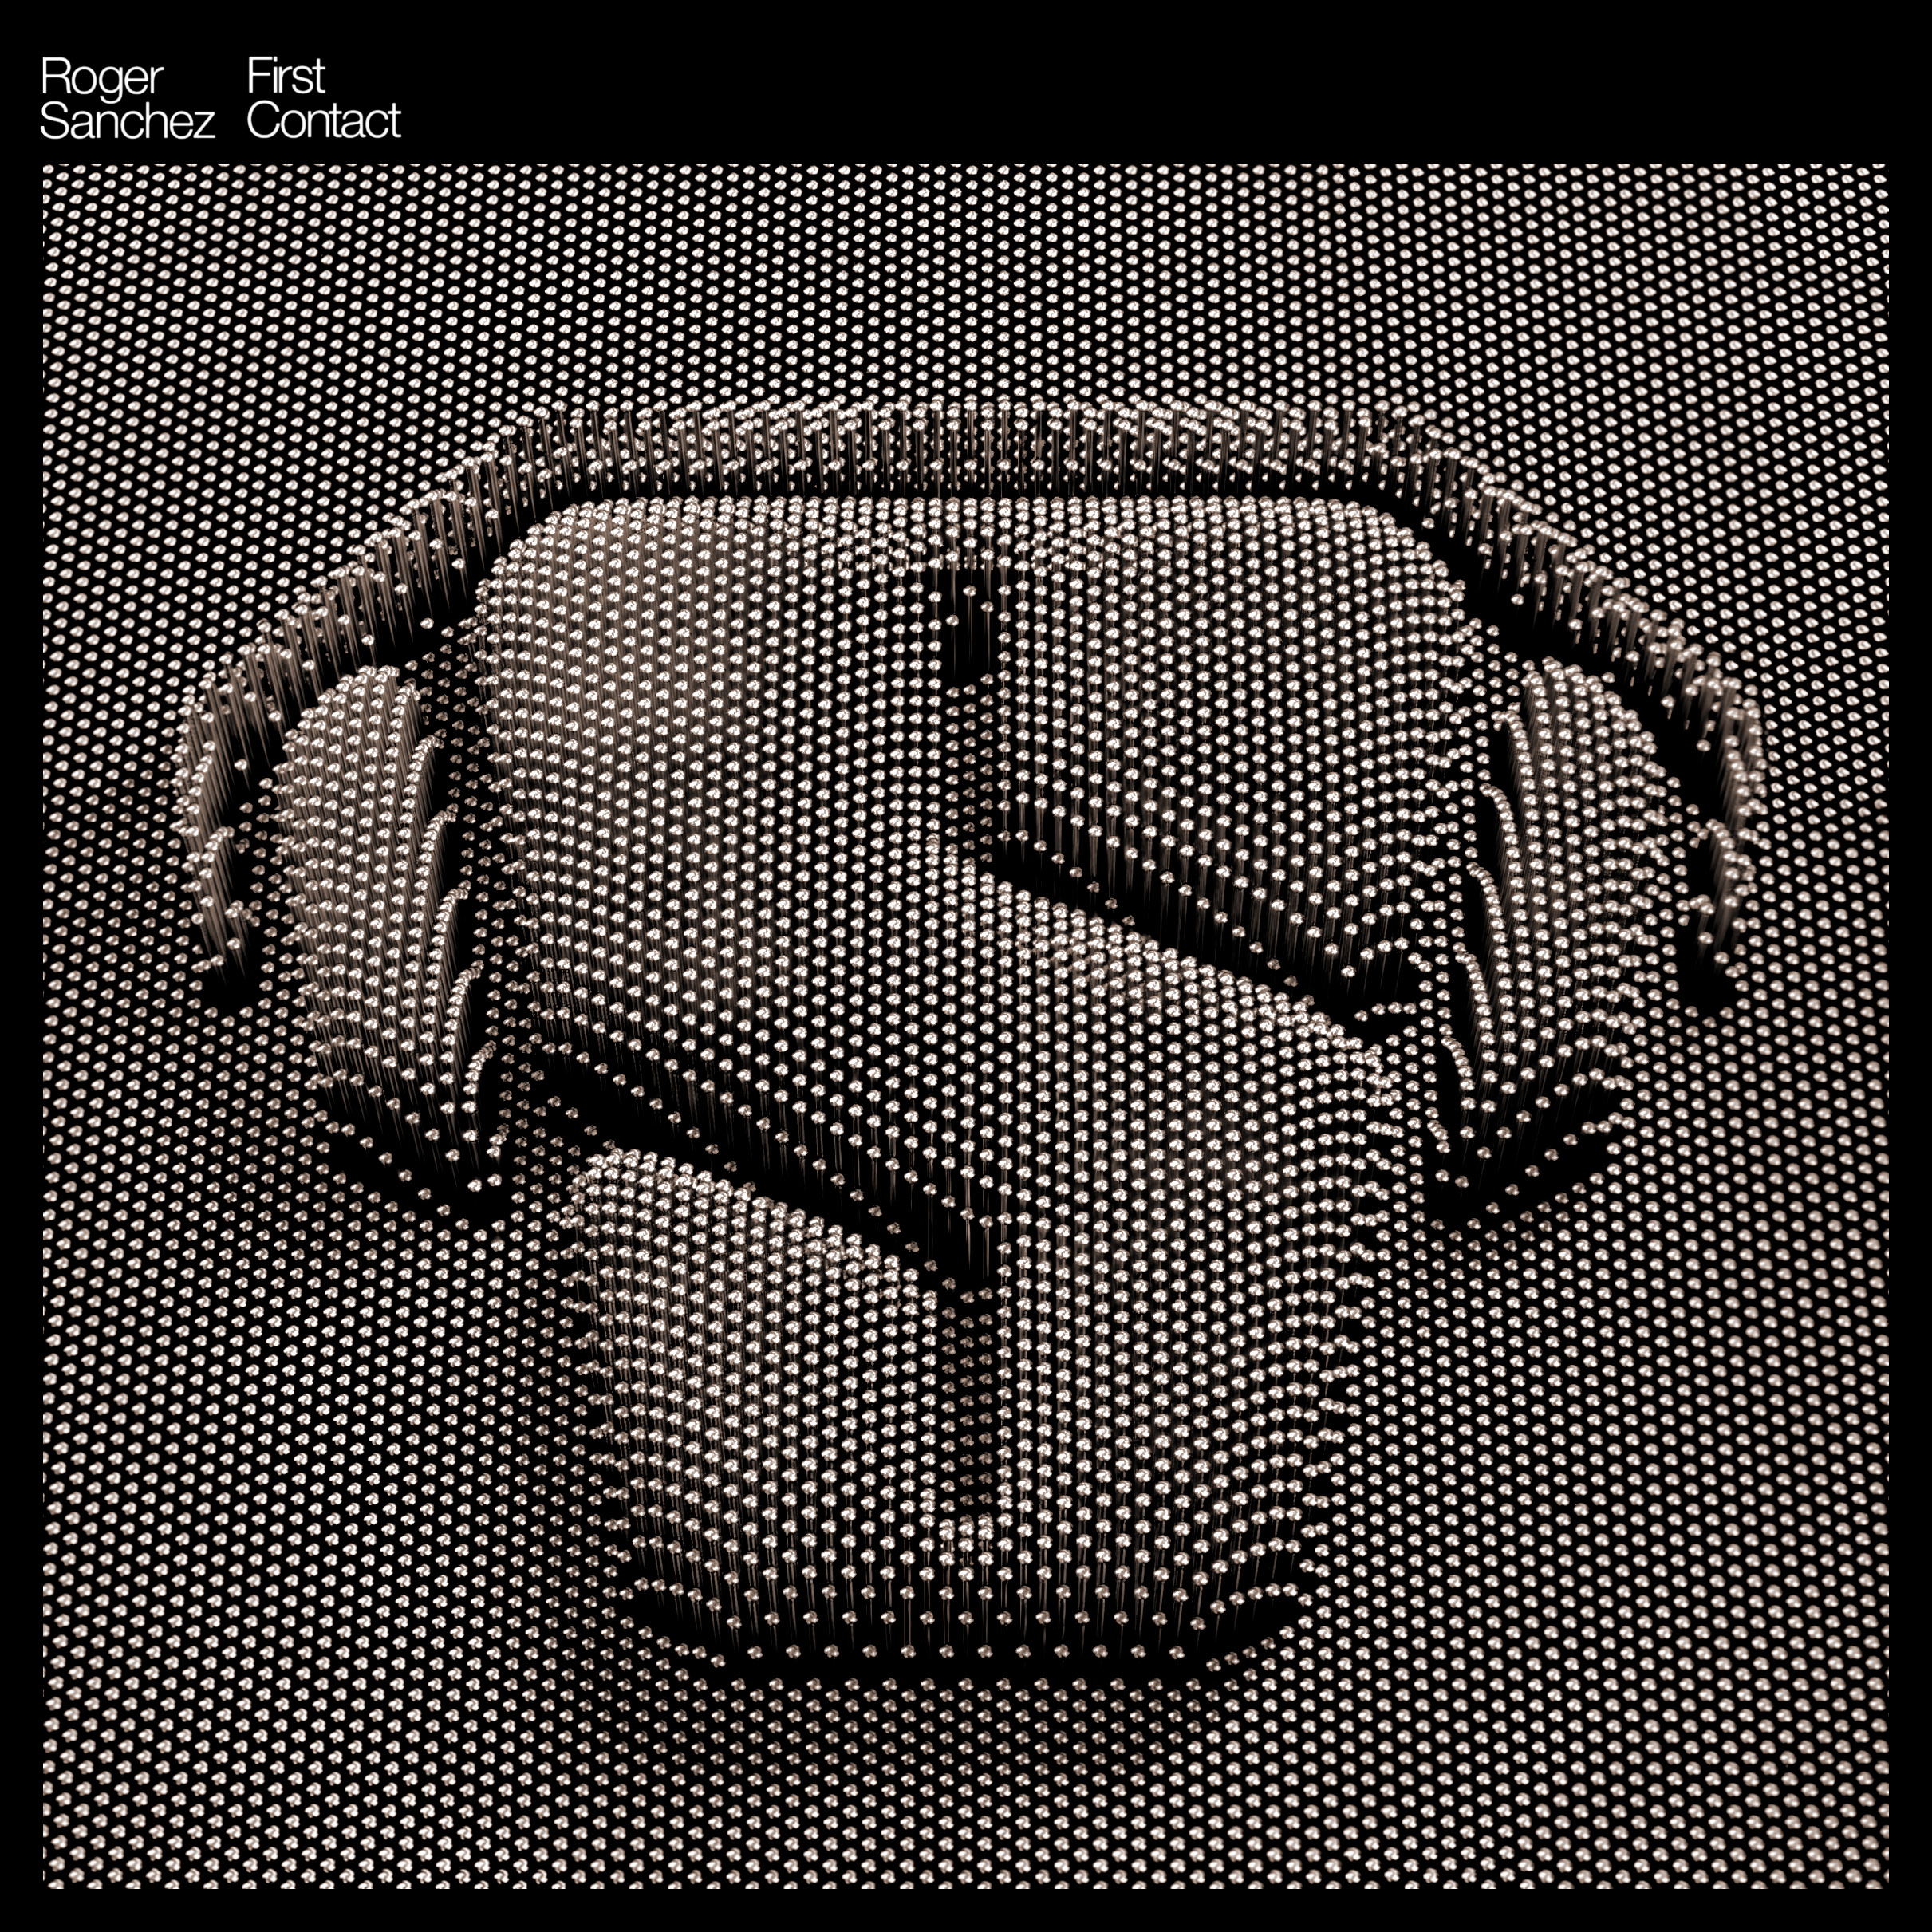 Album Artist: Roger Sanchez / Album Title: First Contact [Bronzed LP Album Art with DoF Effect]